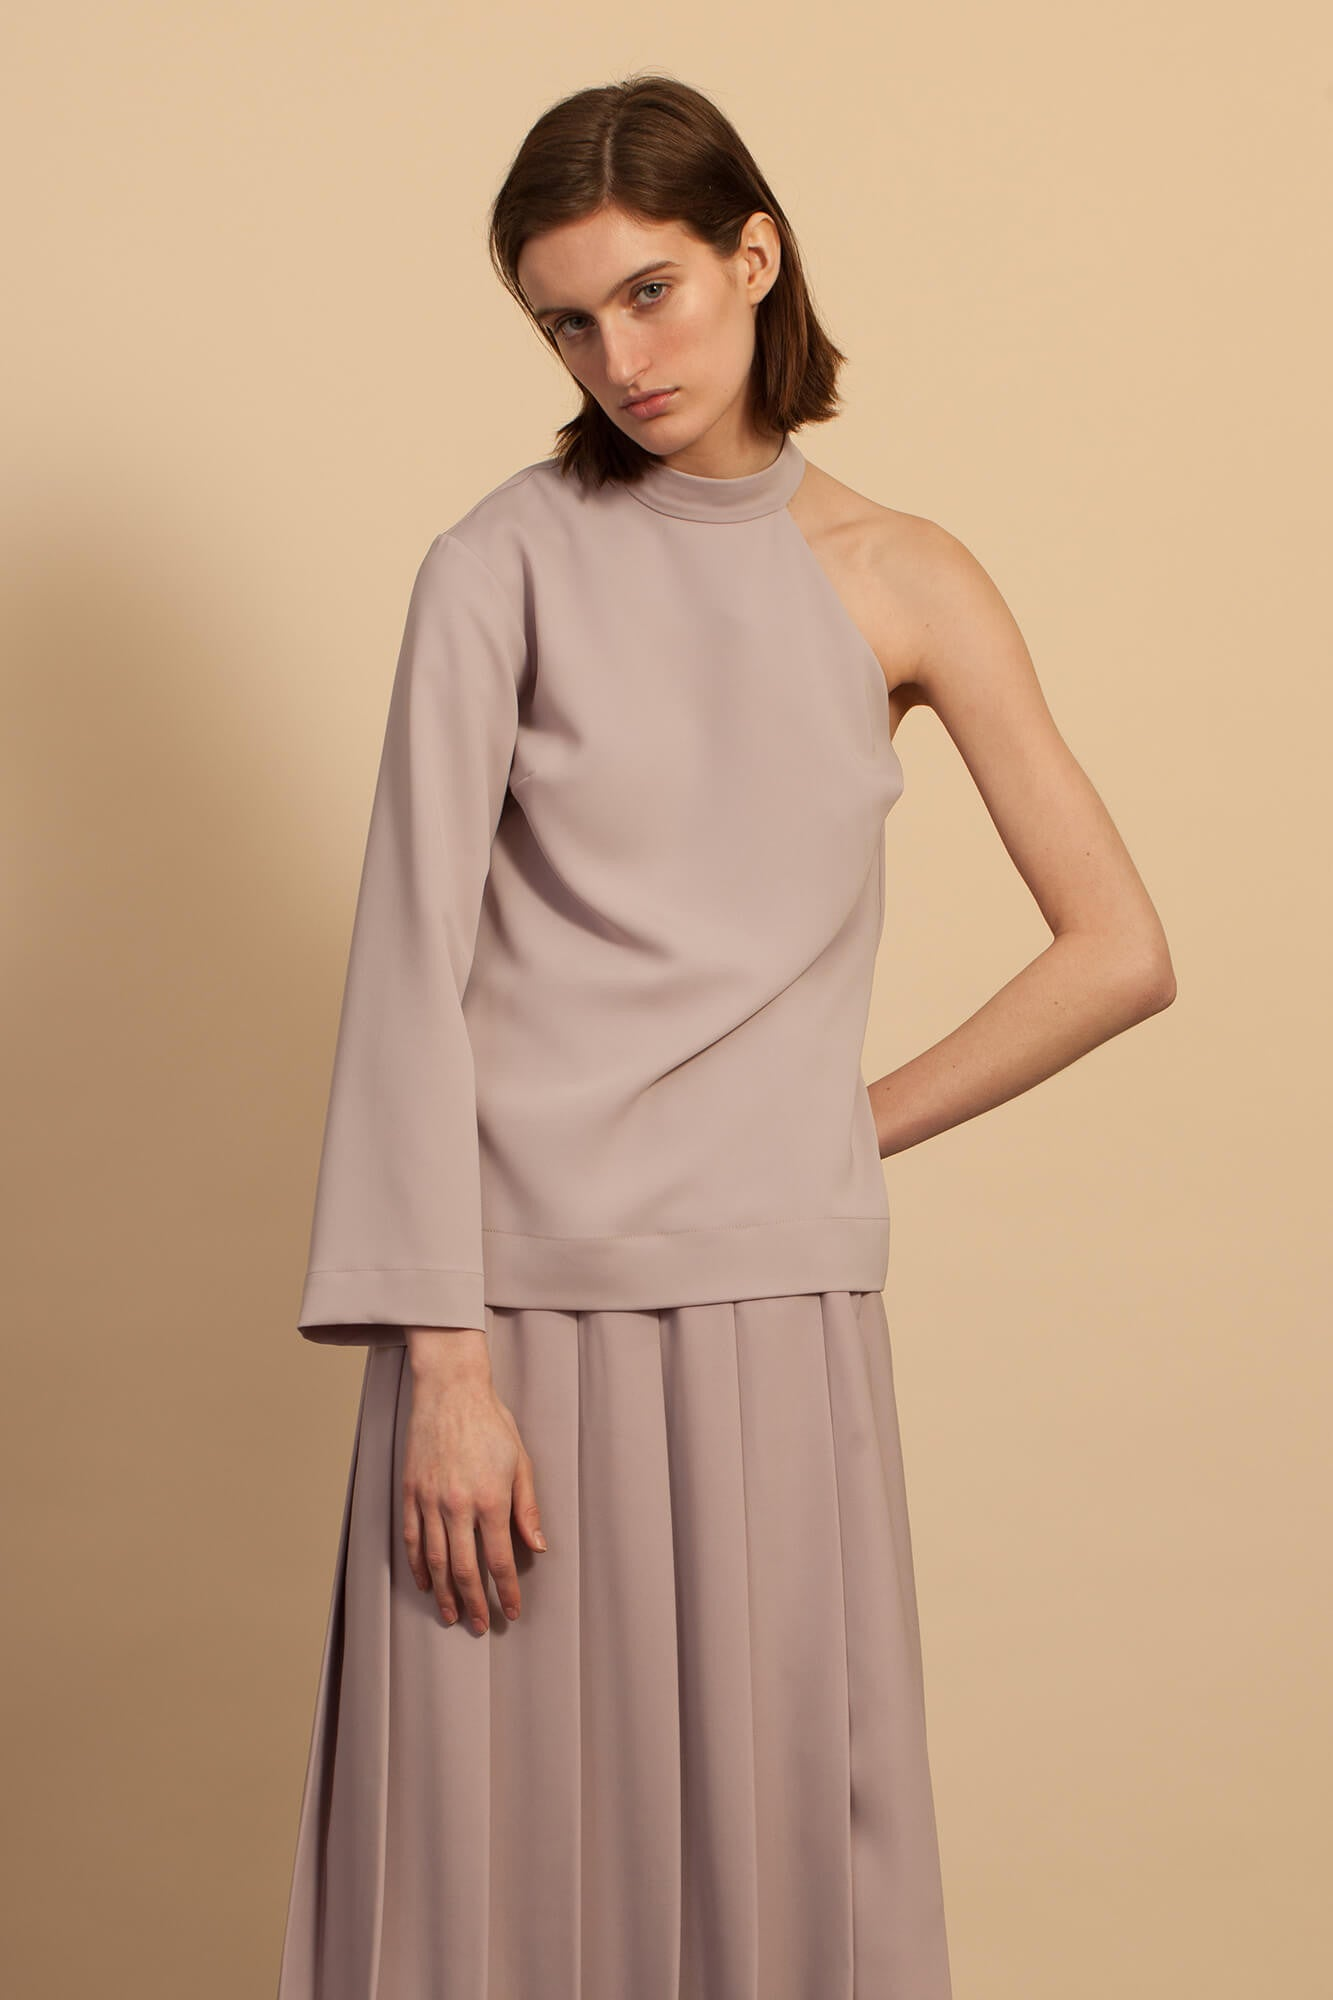 Cut-Out Shoulder Top - Mauve